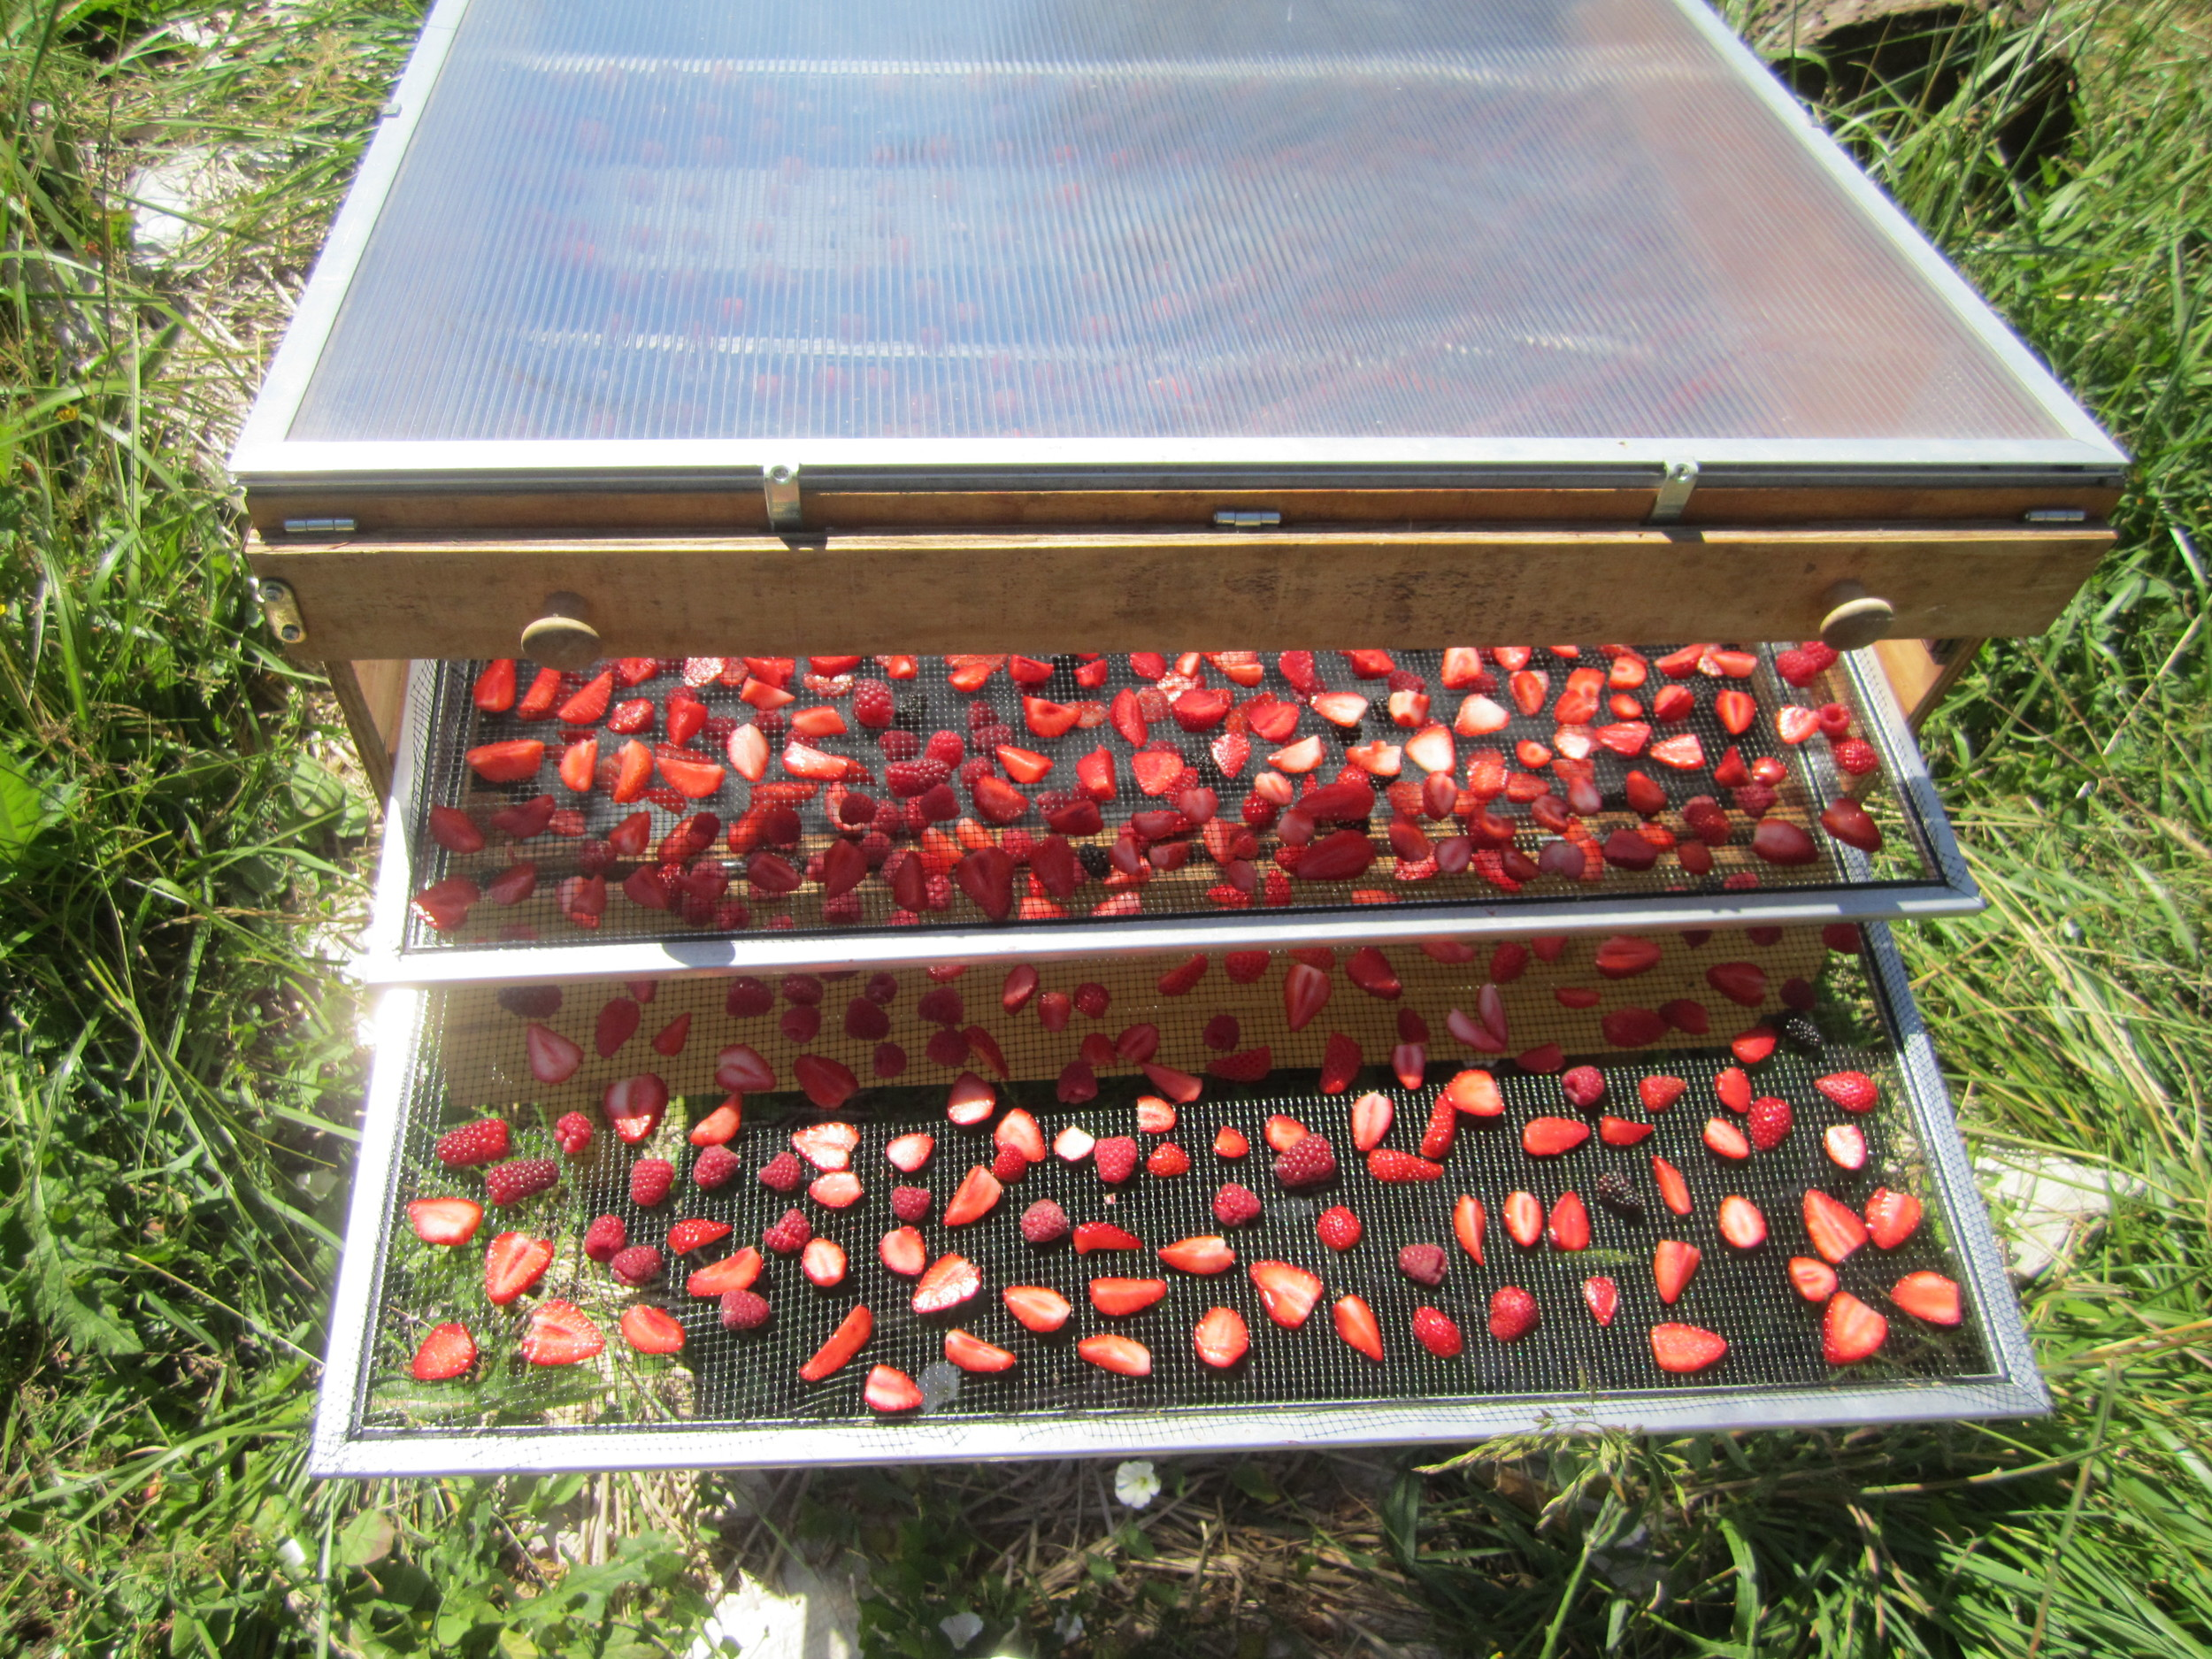 Solar drying berries earlier in the season.